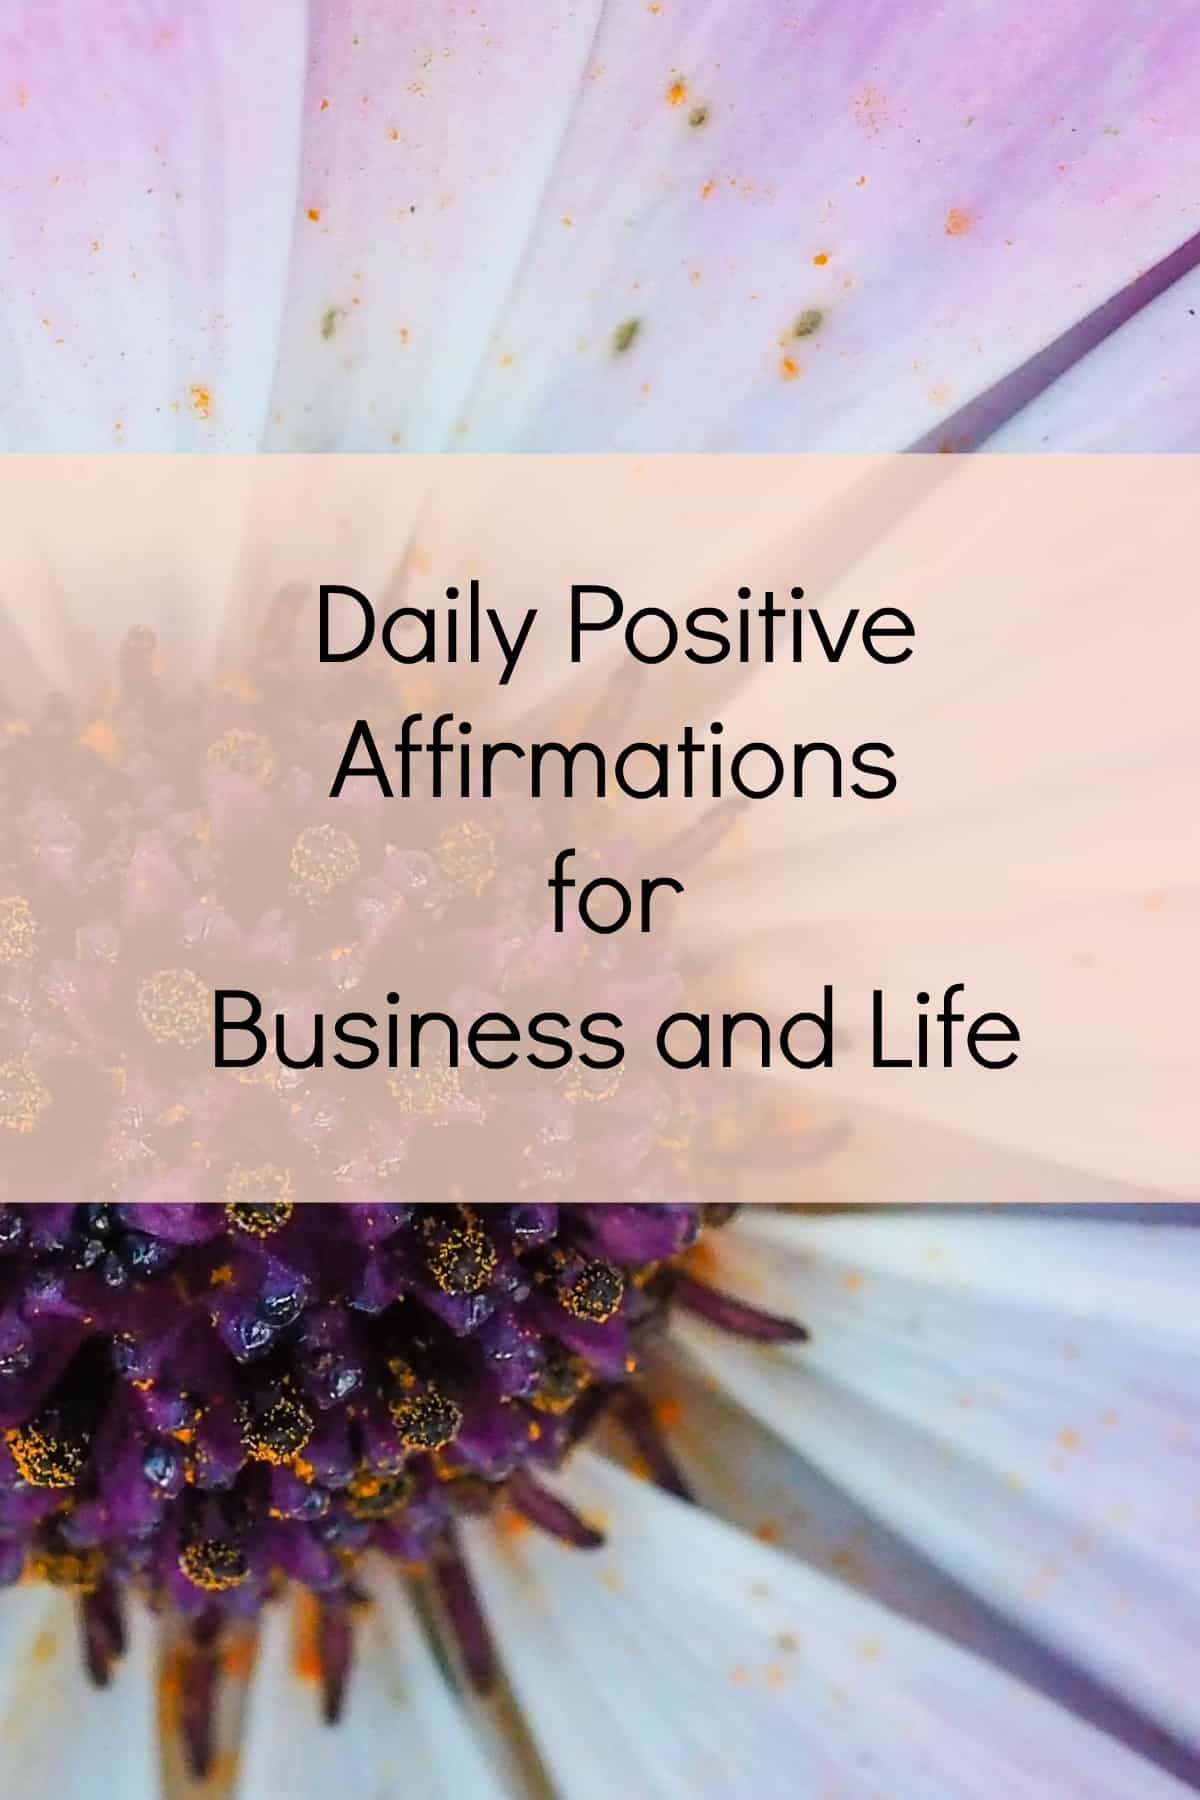 Daily positive affirmations for business and life